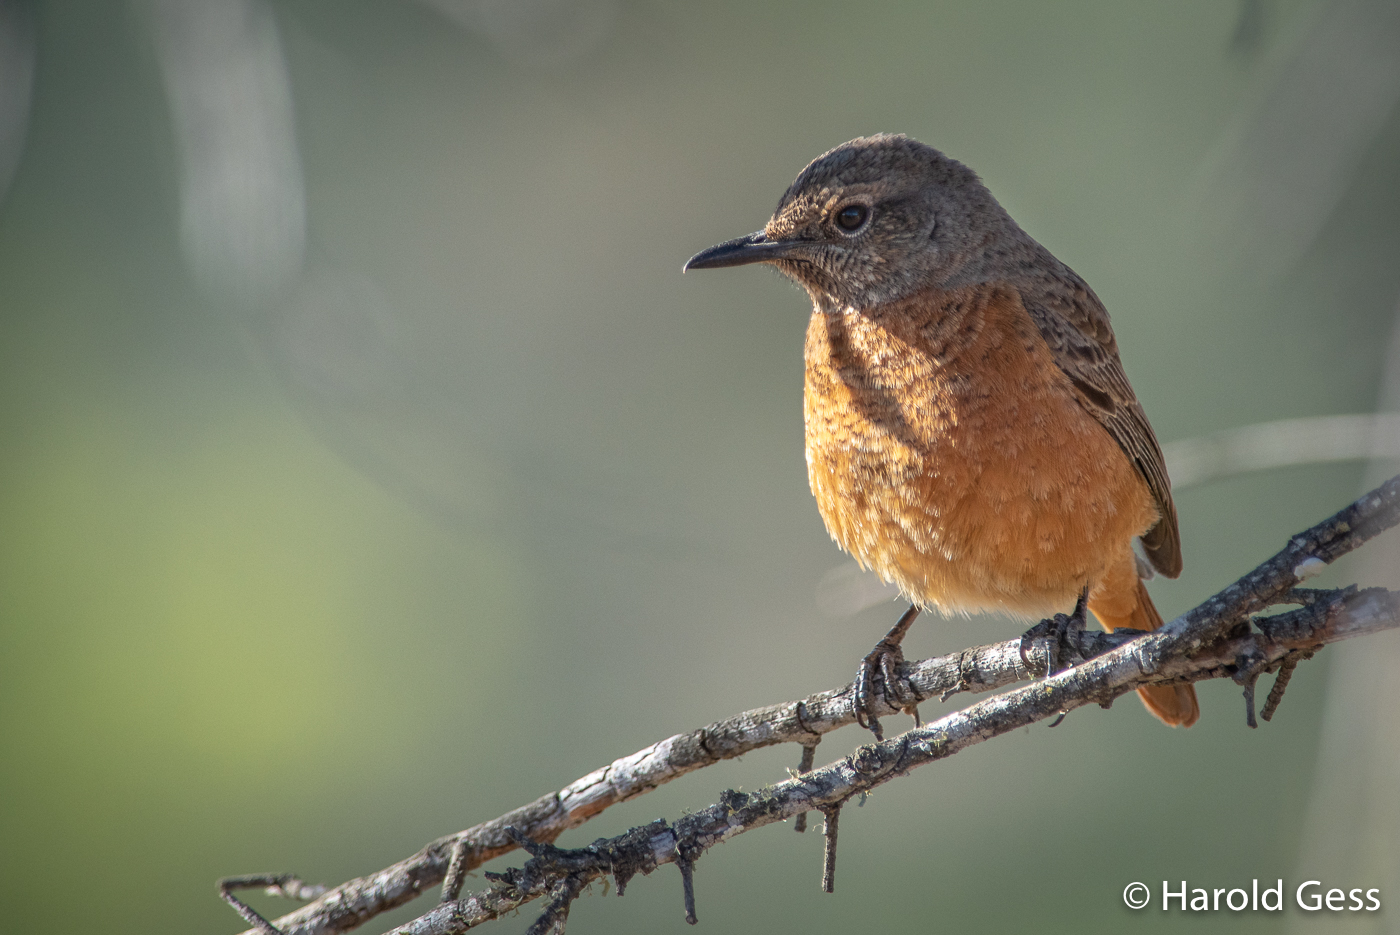 Cape Rock-Thrush, Monticola rupestris, female, Grahamstown, Eastern Cape, South Africa